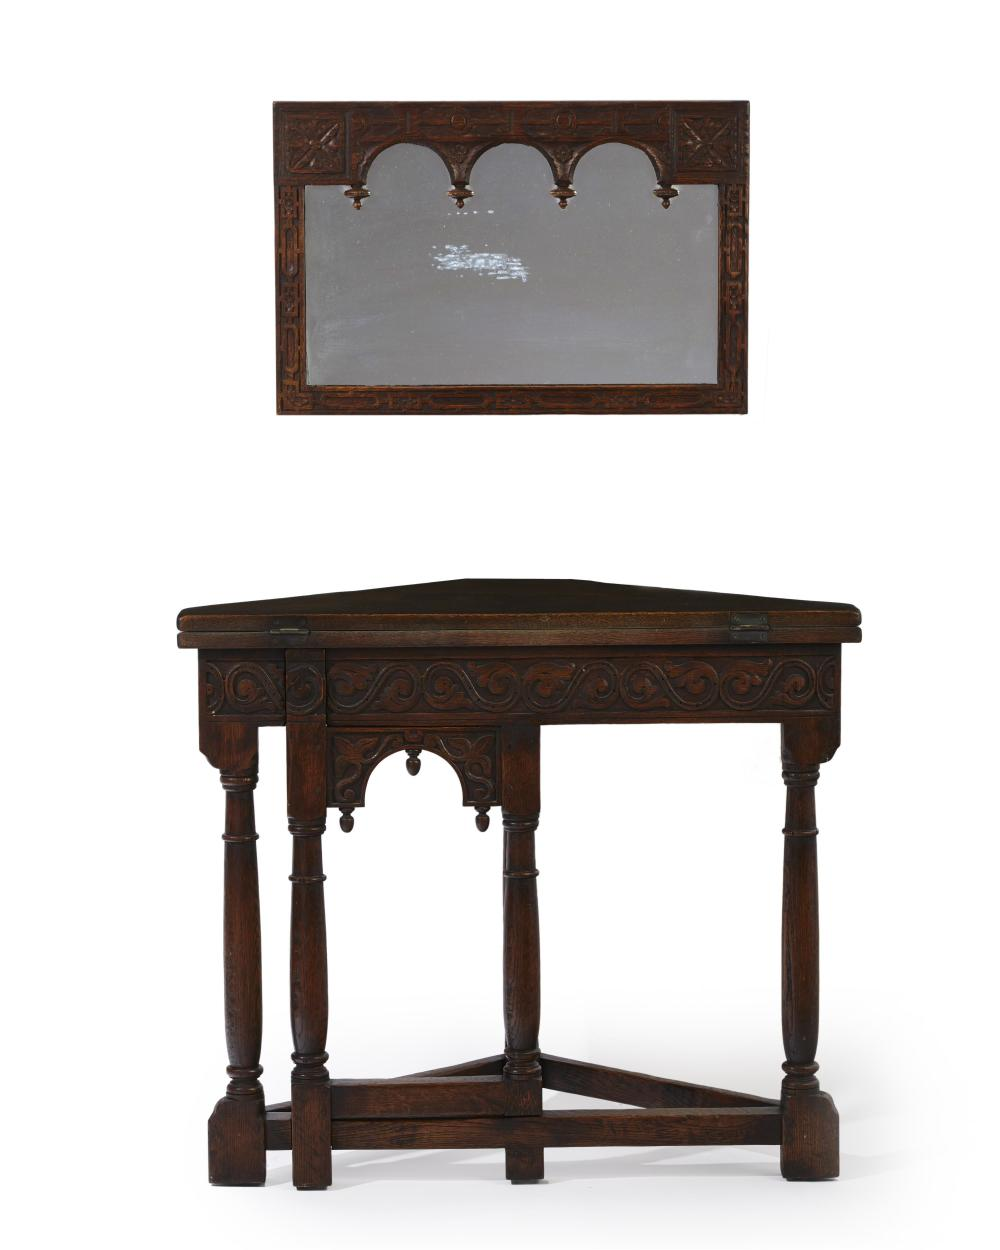 A Marshall Laird oak corner gate-leg table and wall mirror